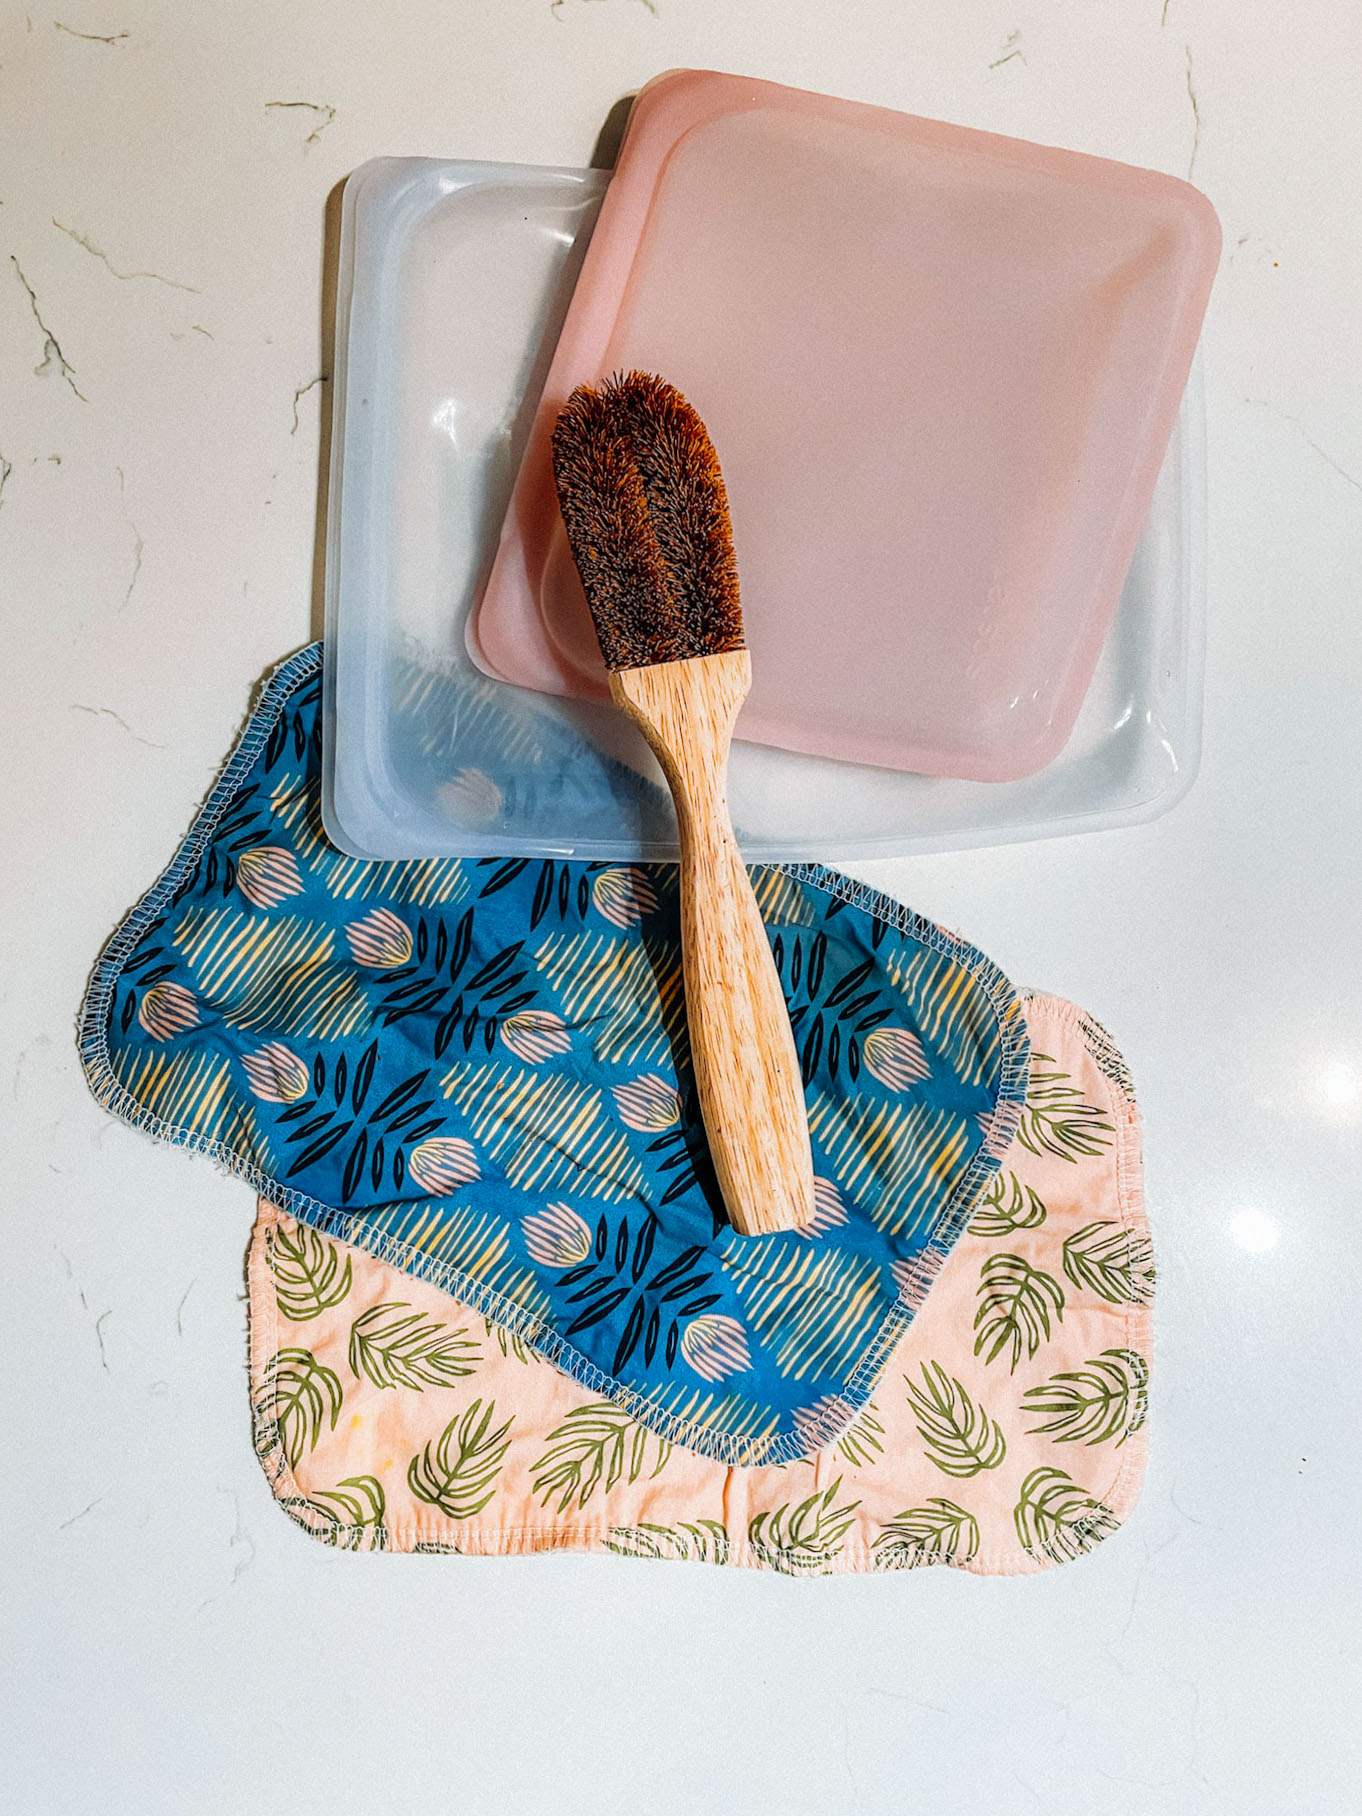 Reusable Kitchen Clothes, Coconut brush, Stasher Bags